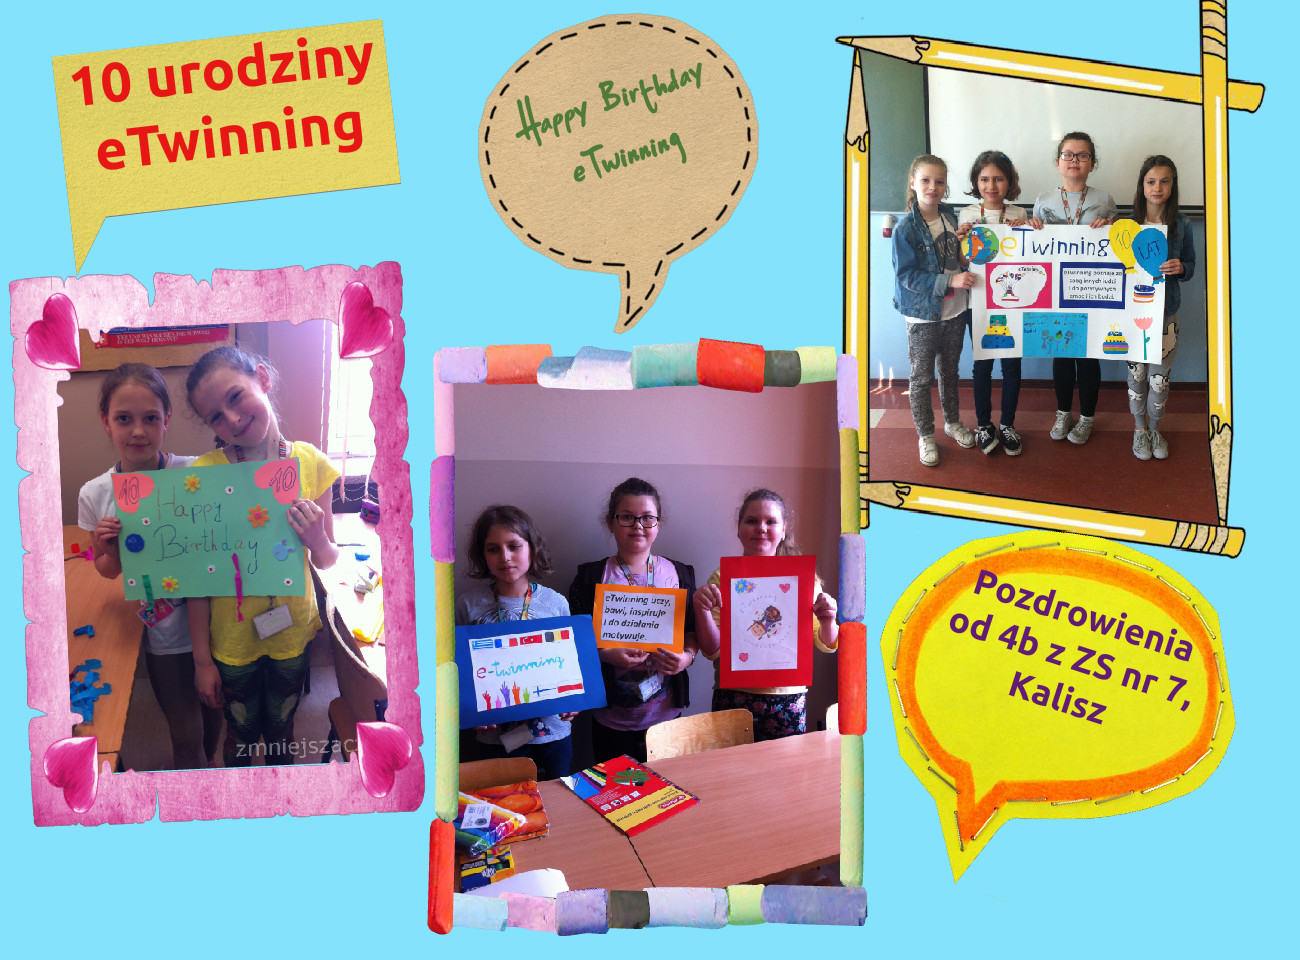 etwinning - 10th birthday